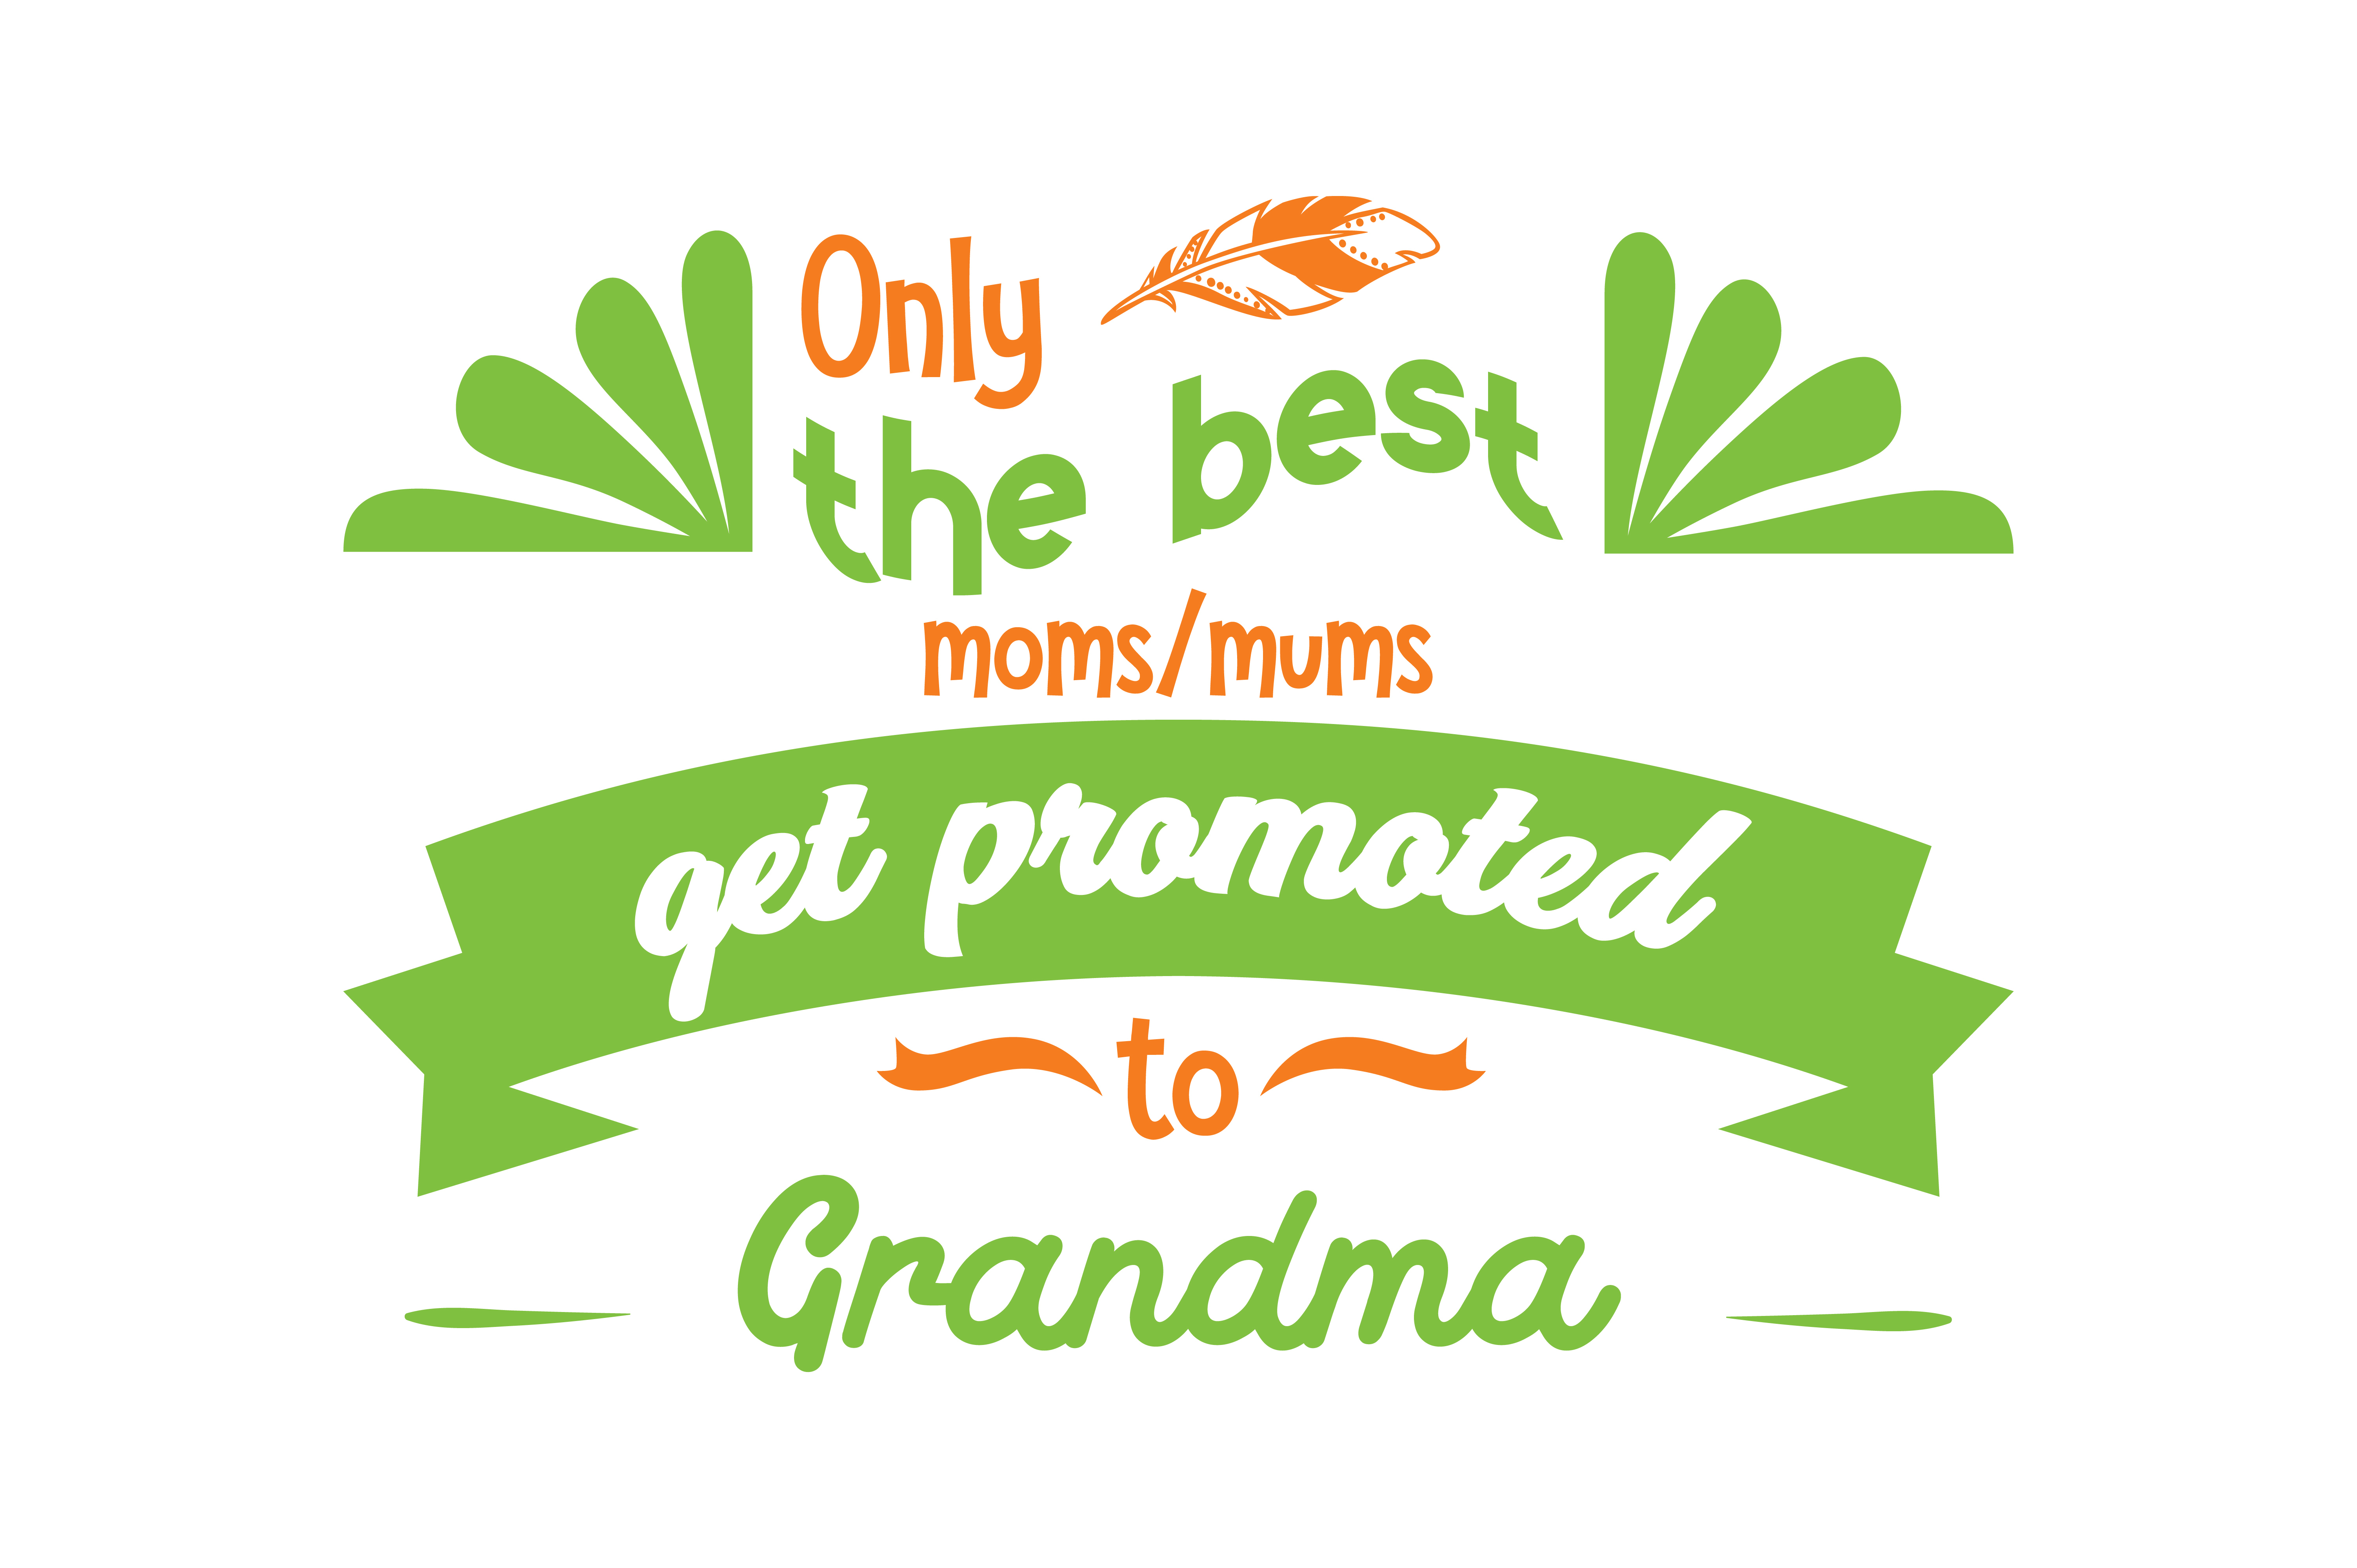 Download Free Only The Best Moms Mums Get Promoted To Grandma Quote Svg Cut SVG Cut Files